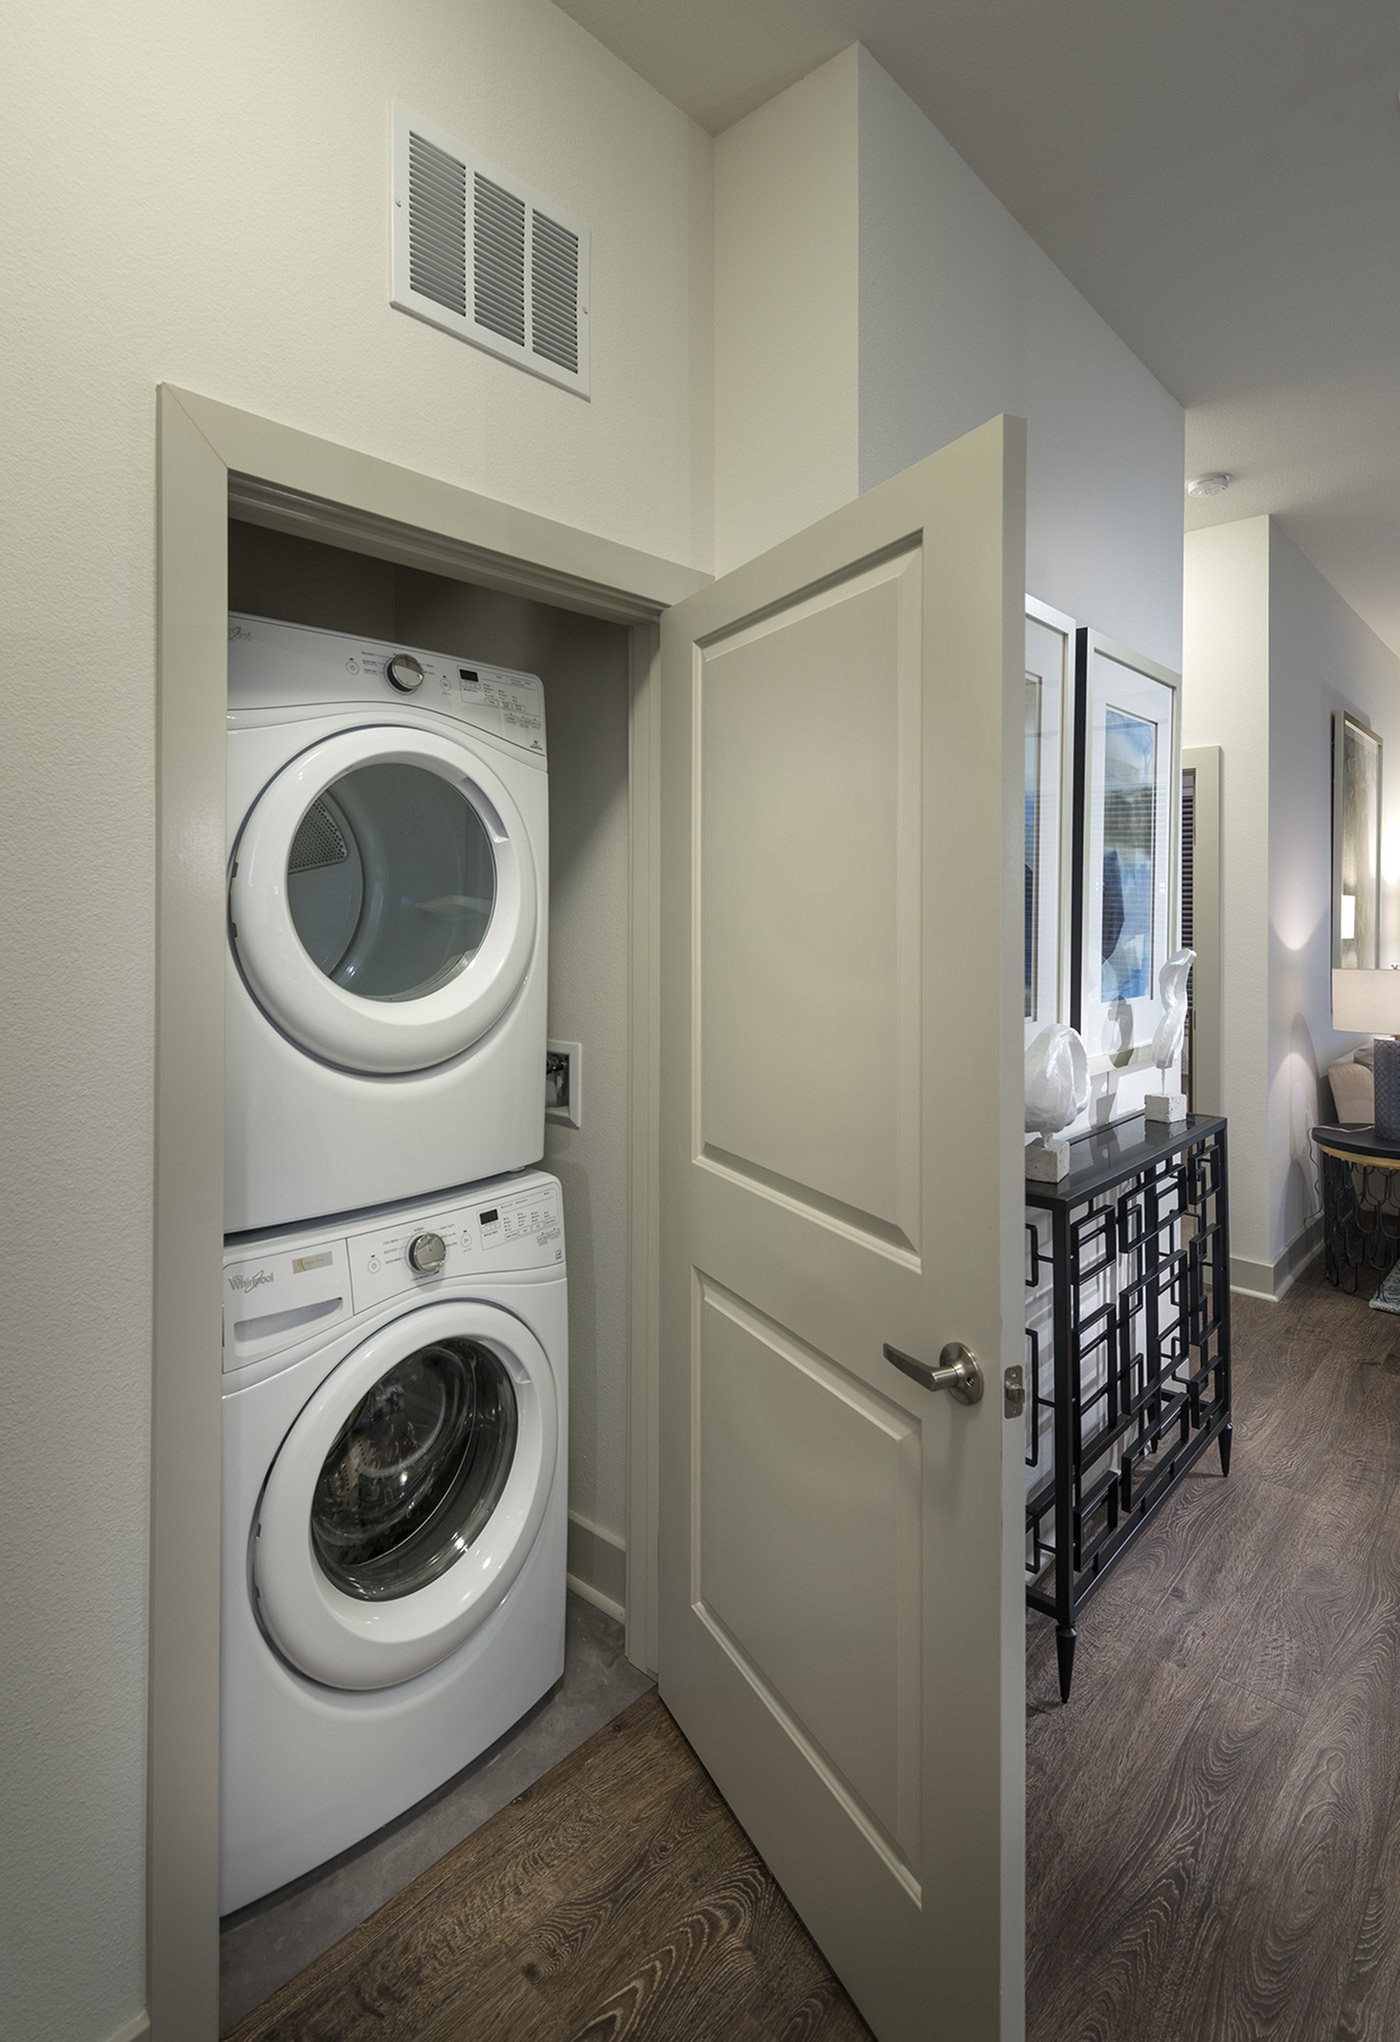 Image of Full-size high-efficiency washer and dryer for Hanover Mission Gorge